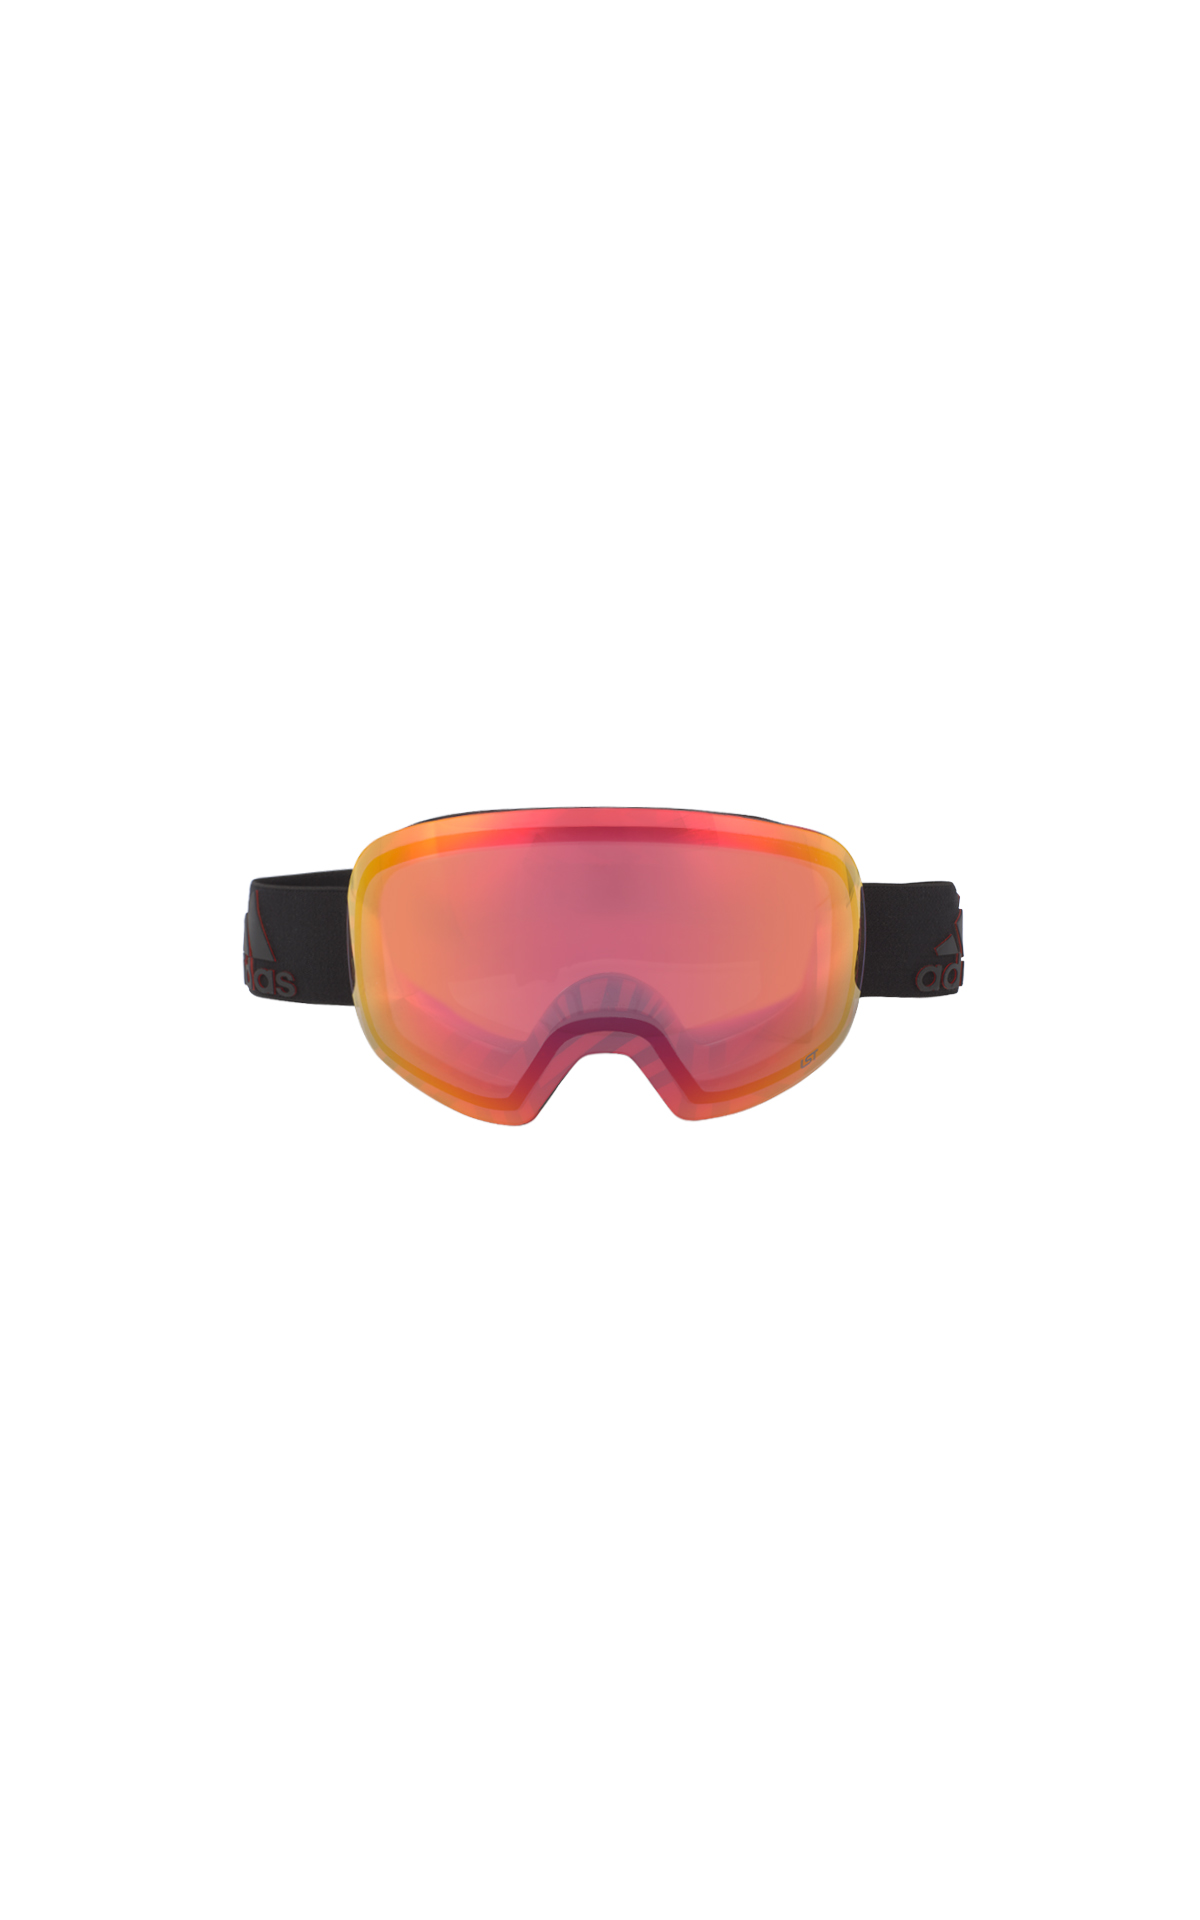 Orange snow glasses Adidas Cottet